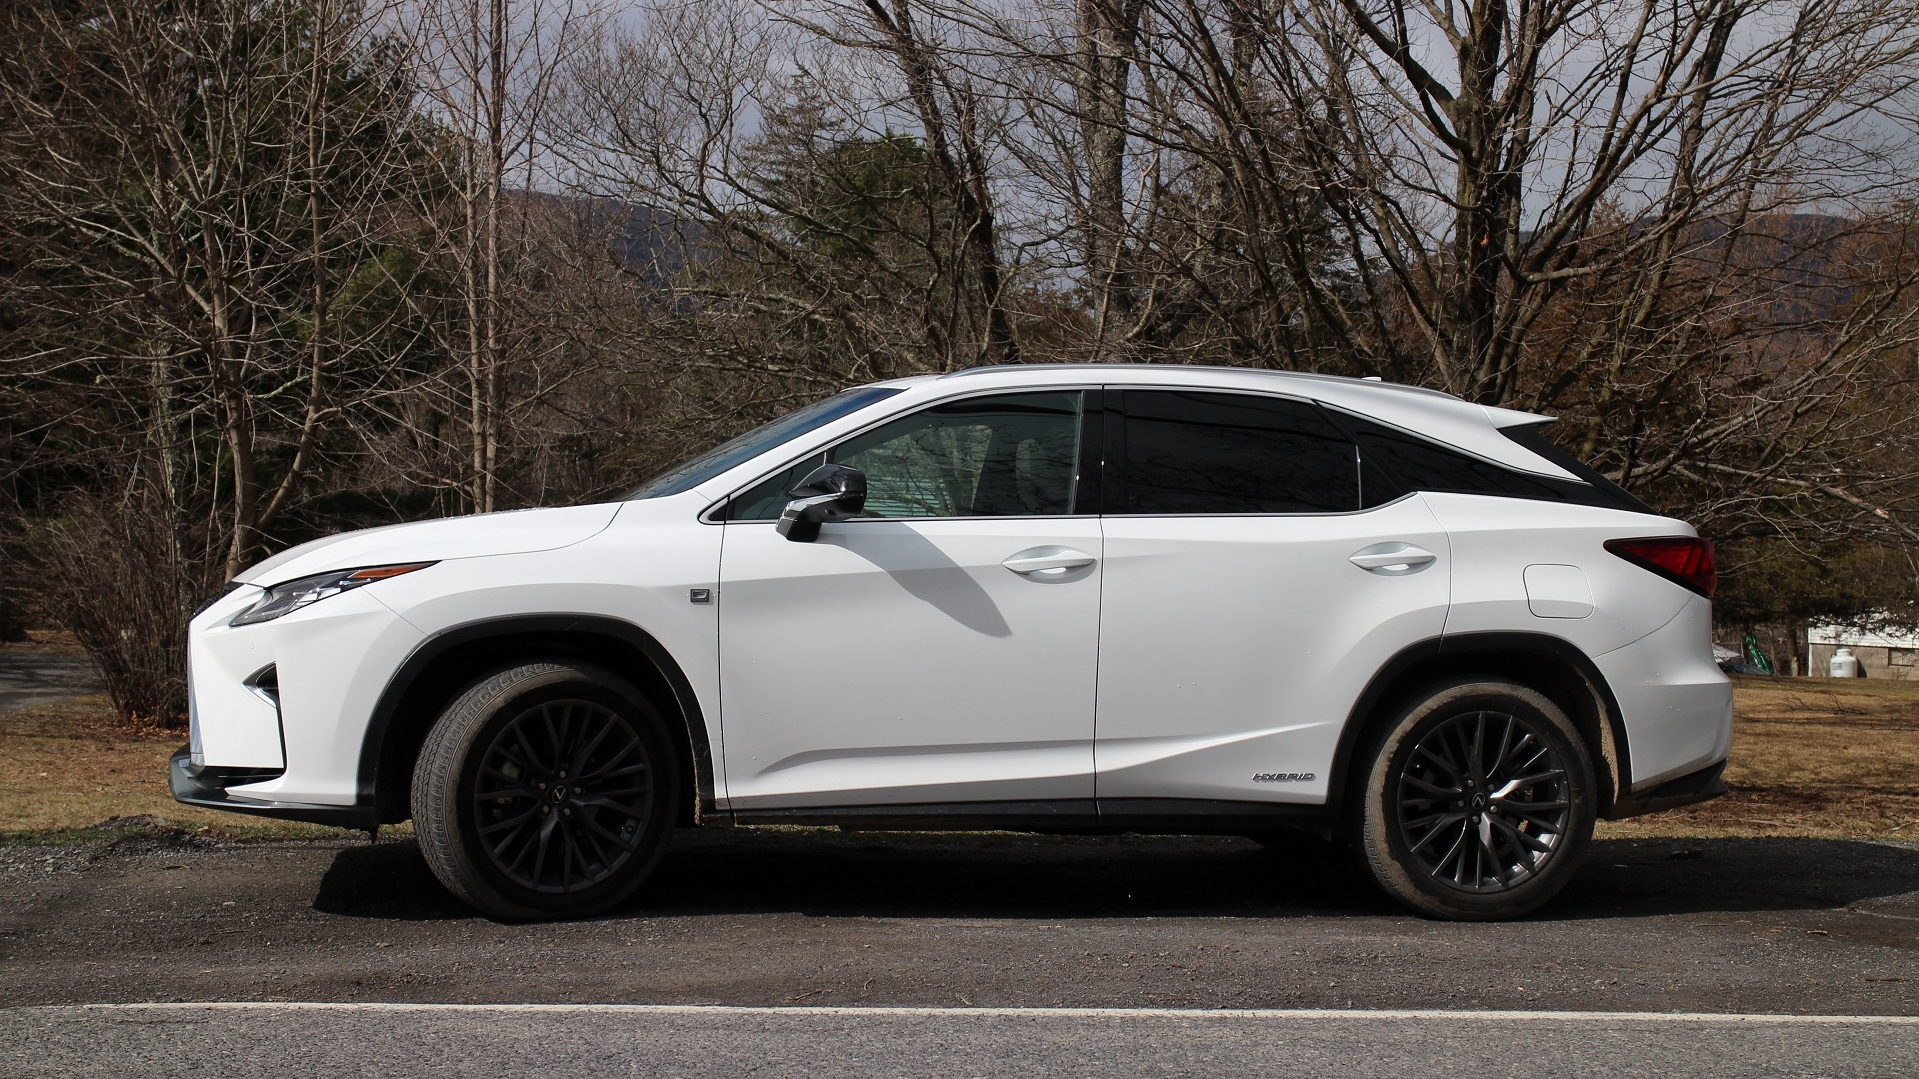 2017 Lexus Rx 450h Catskill Mountains Ny Feb